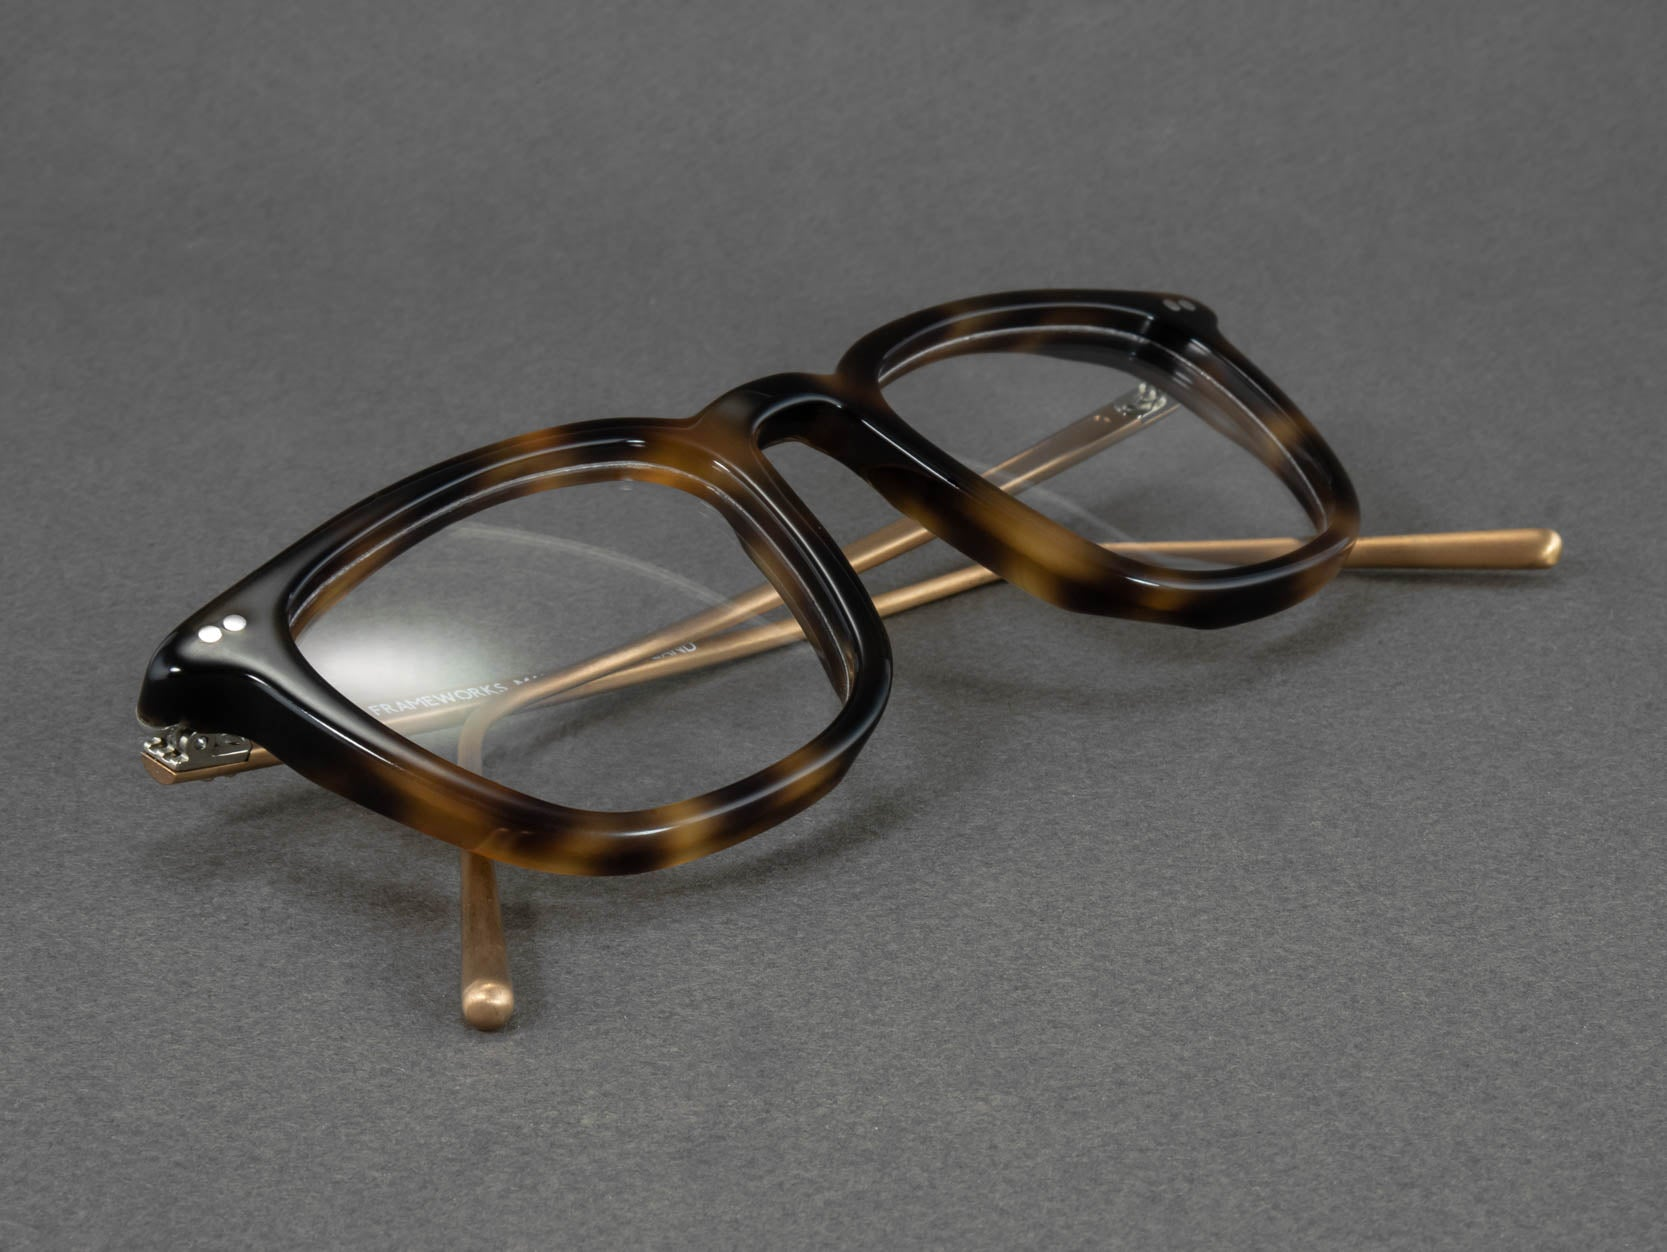 square tortoise_shell glasses close up